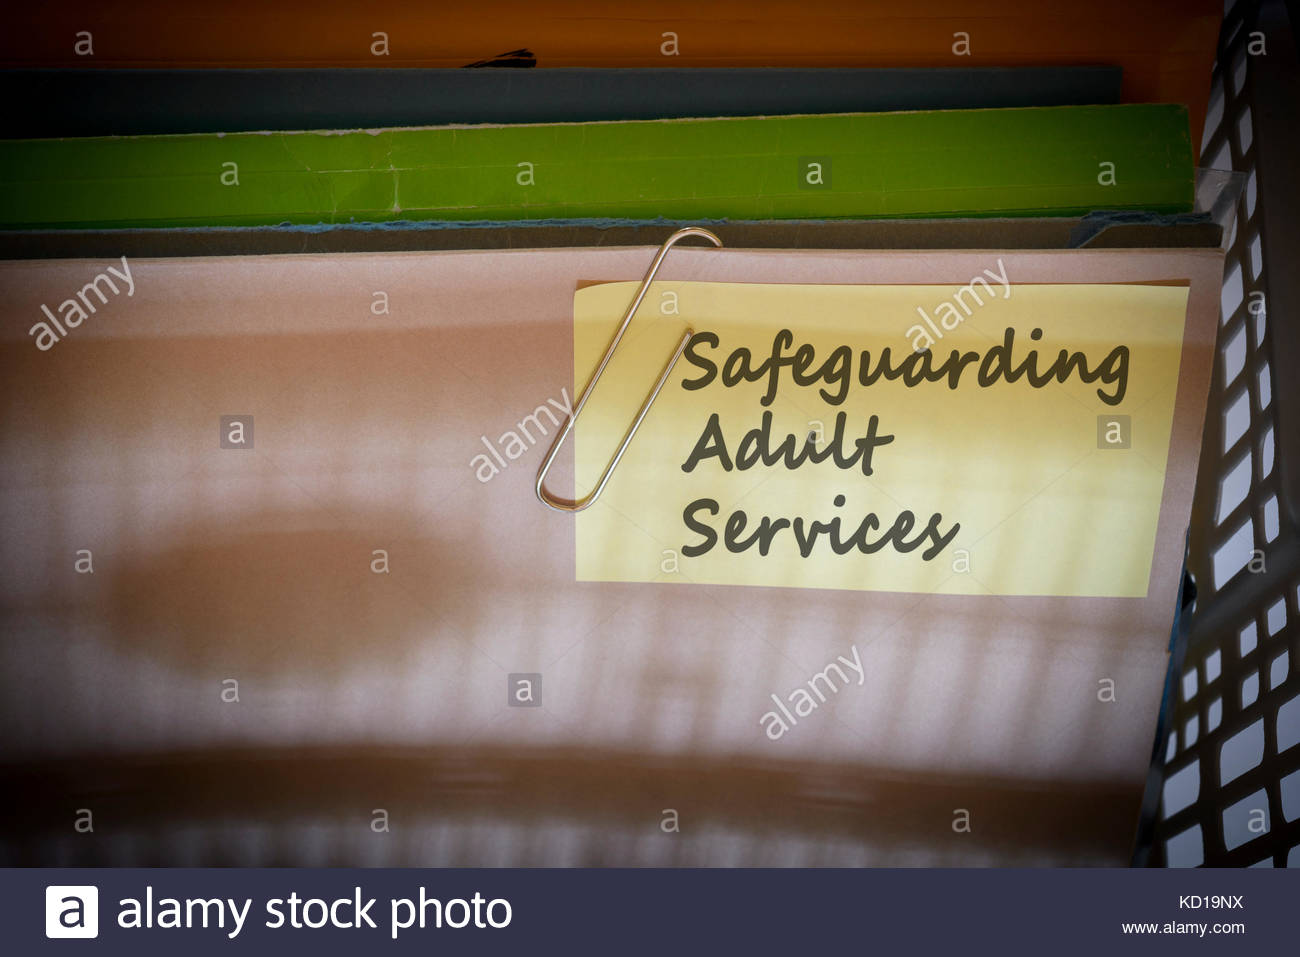 Safeguarding Adult Services written on document folder, Dorset, England. - Stock Image